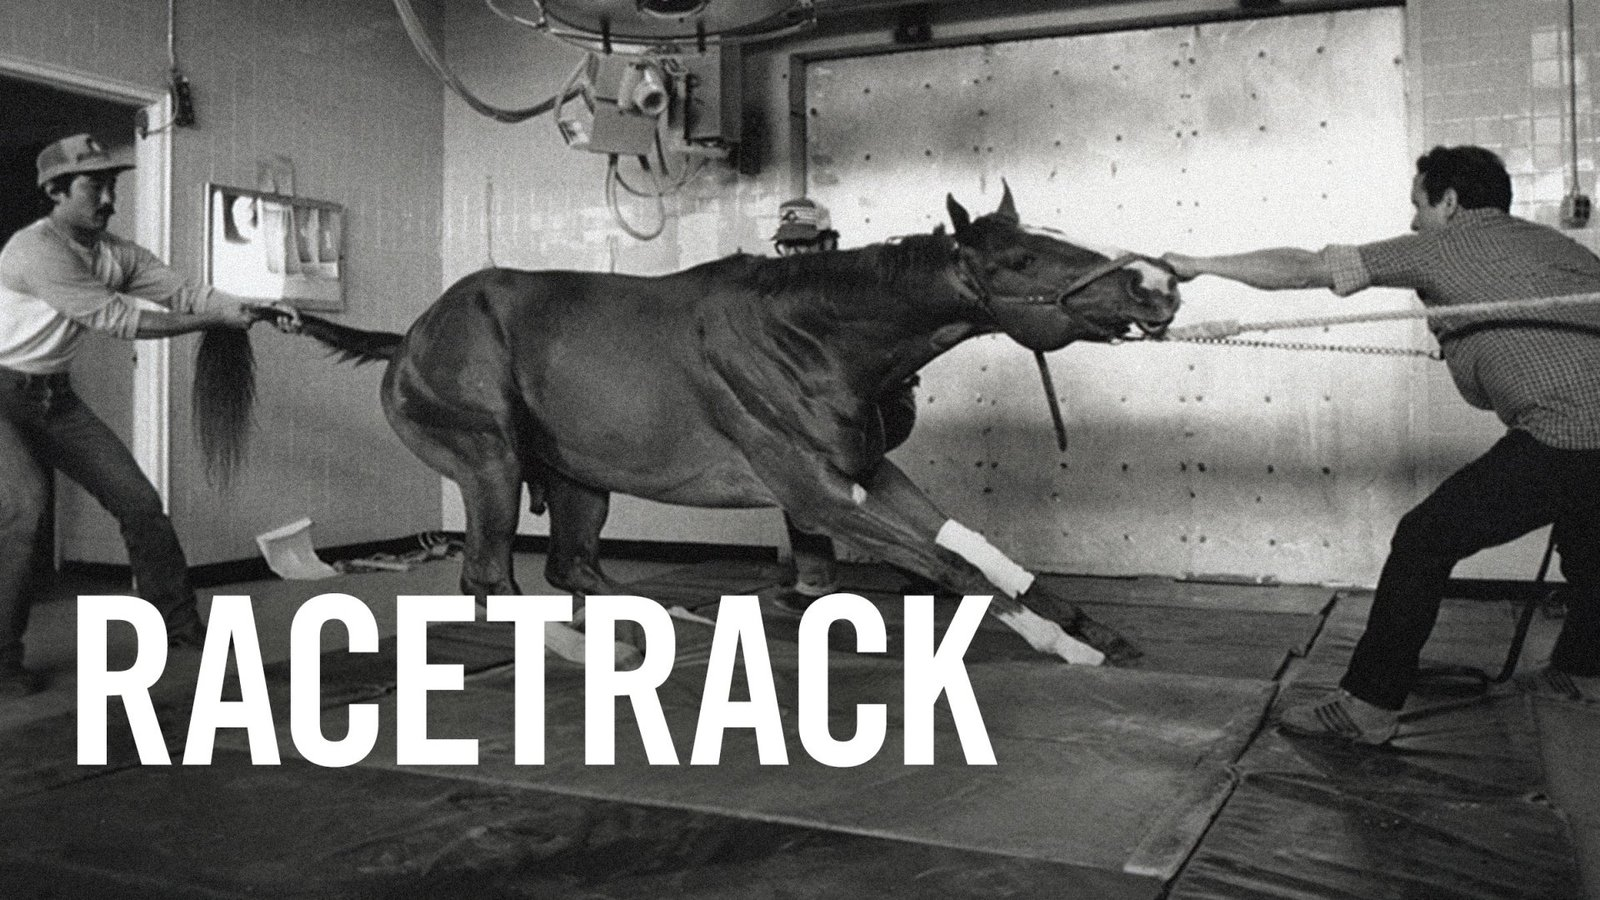 Racetrack - The Daily Activites at the Belmont Race Track